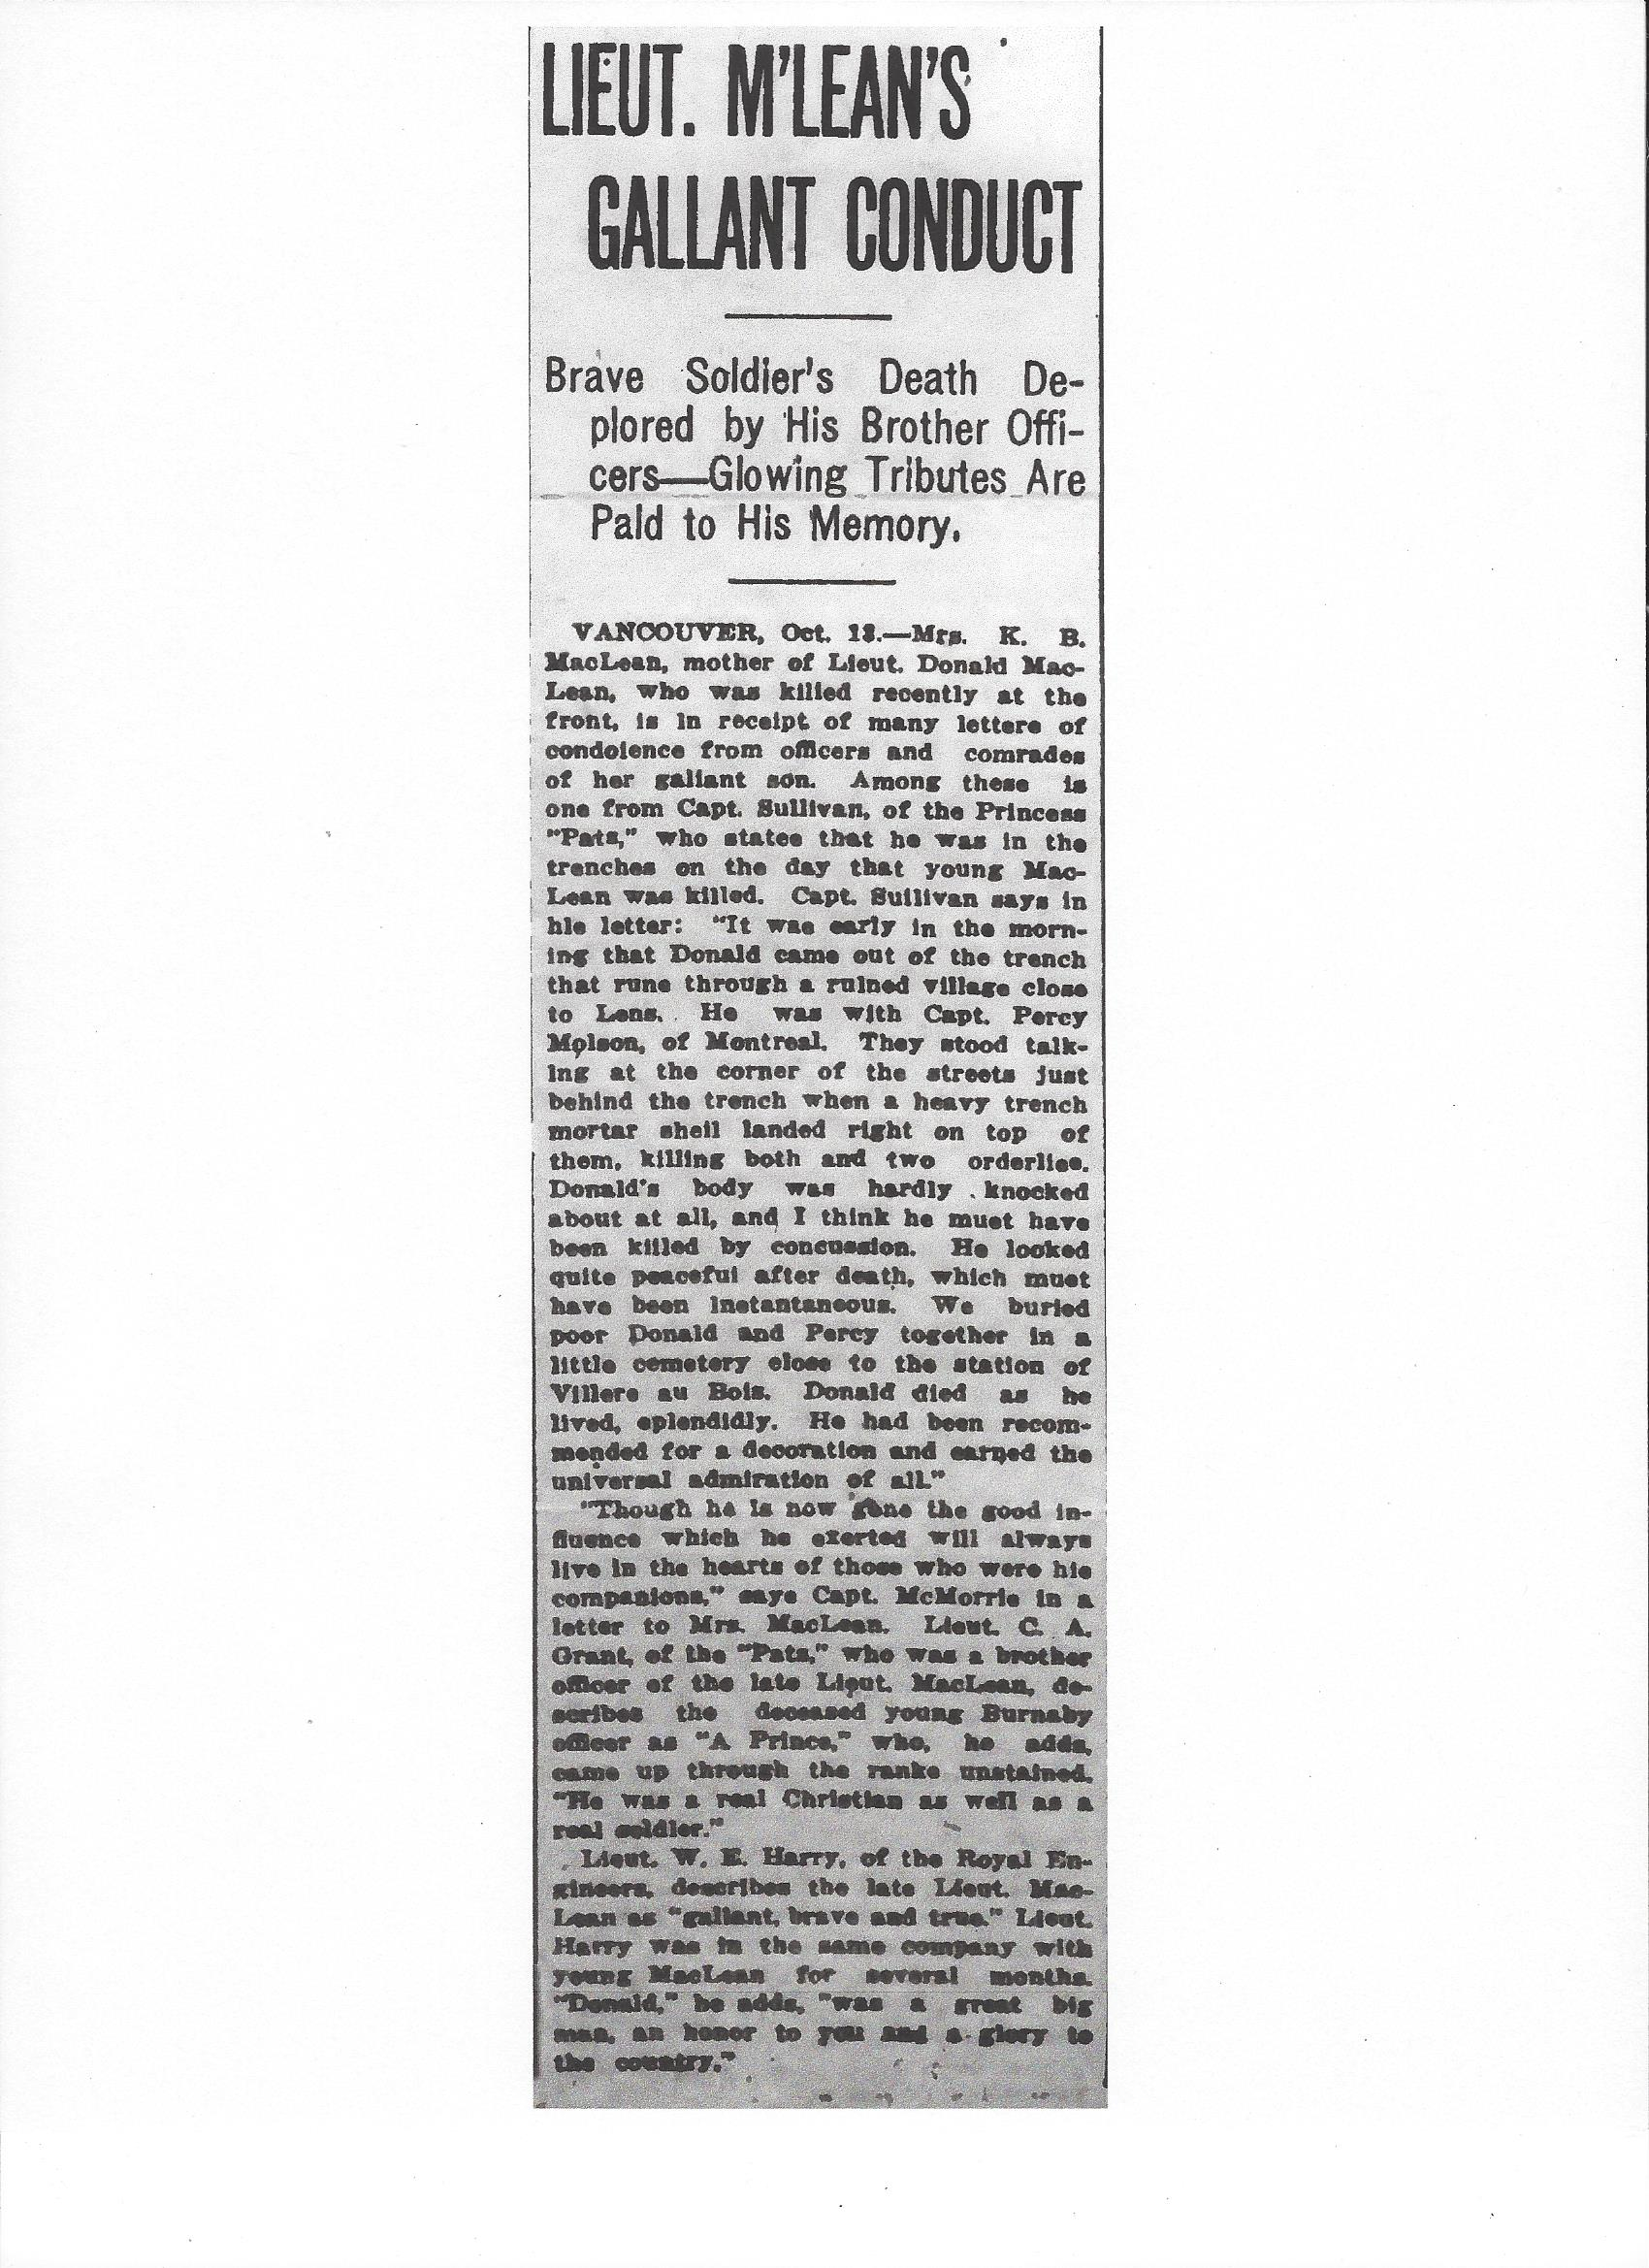 Newspaper Clipping – Newspaper clipping from the Daily Colonist of October 14, 1917. Image taken from web address of http://archive.org/stream/dailycolonist59y265uvic#page/n0/mode/1up